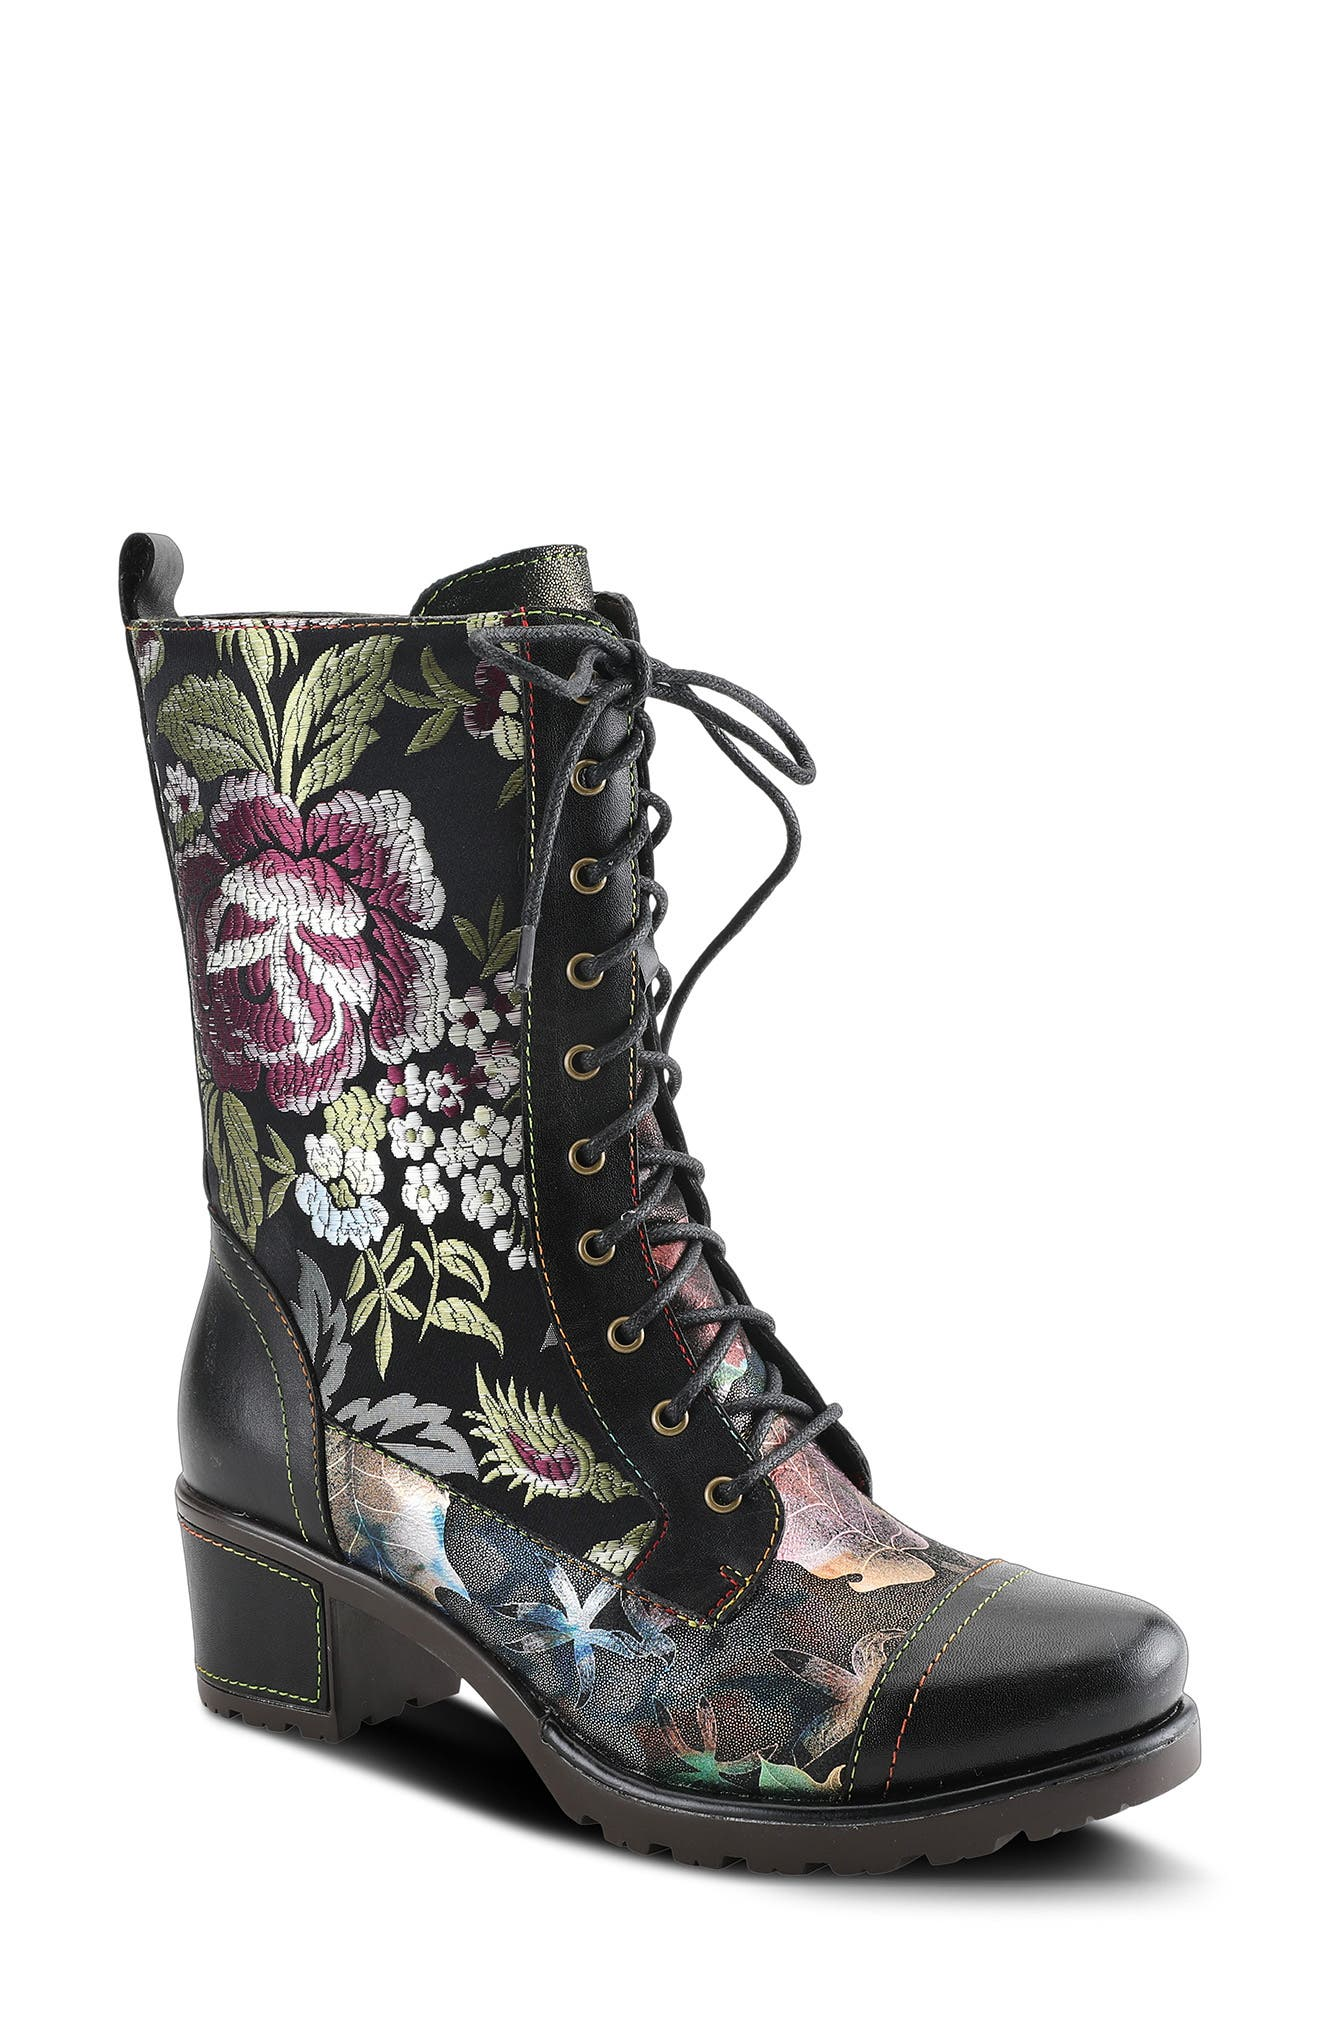 Stylista Lace-Up Boot